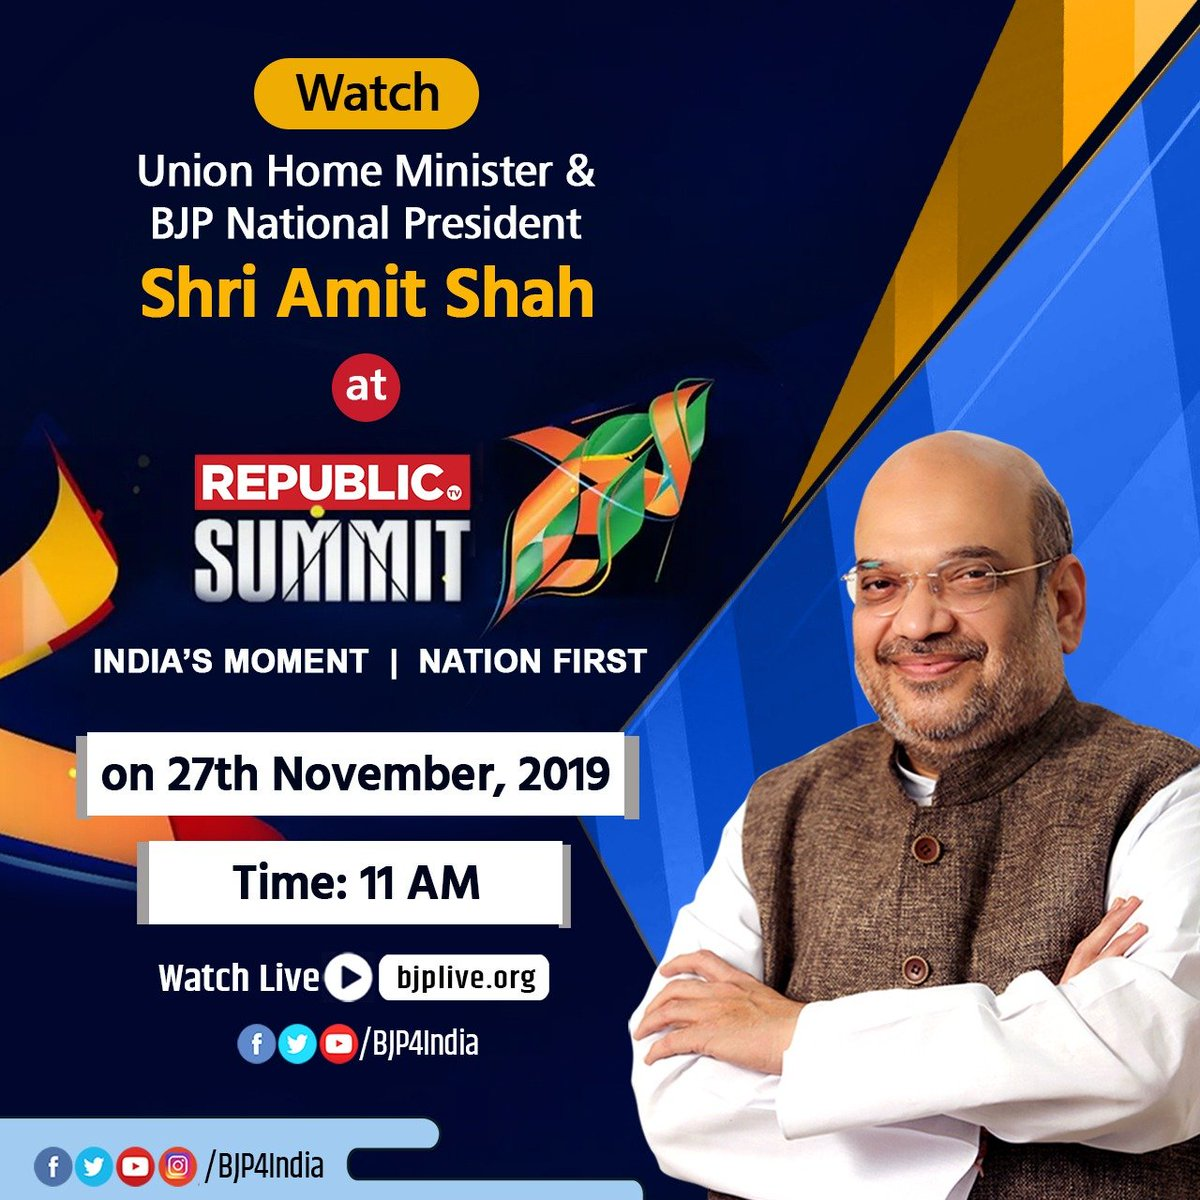 Union Home Minister and BJP National President Shri @AmitShah will address #RepublicSummit on 27 November 2019 at 11 am. Watch LIVE at • facebook.com/BJP4India • pscp.tv/BJP4India • youtube.com/BJP4India • bjplive.org